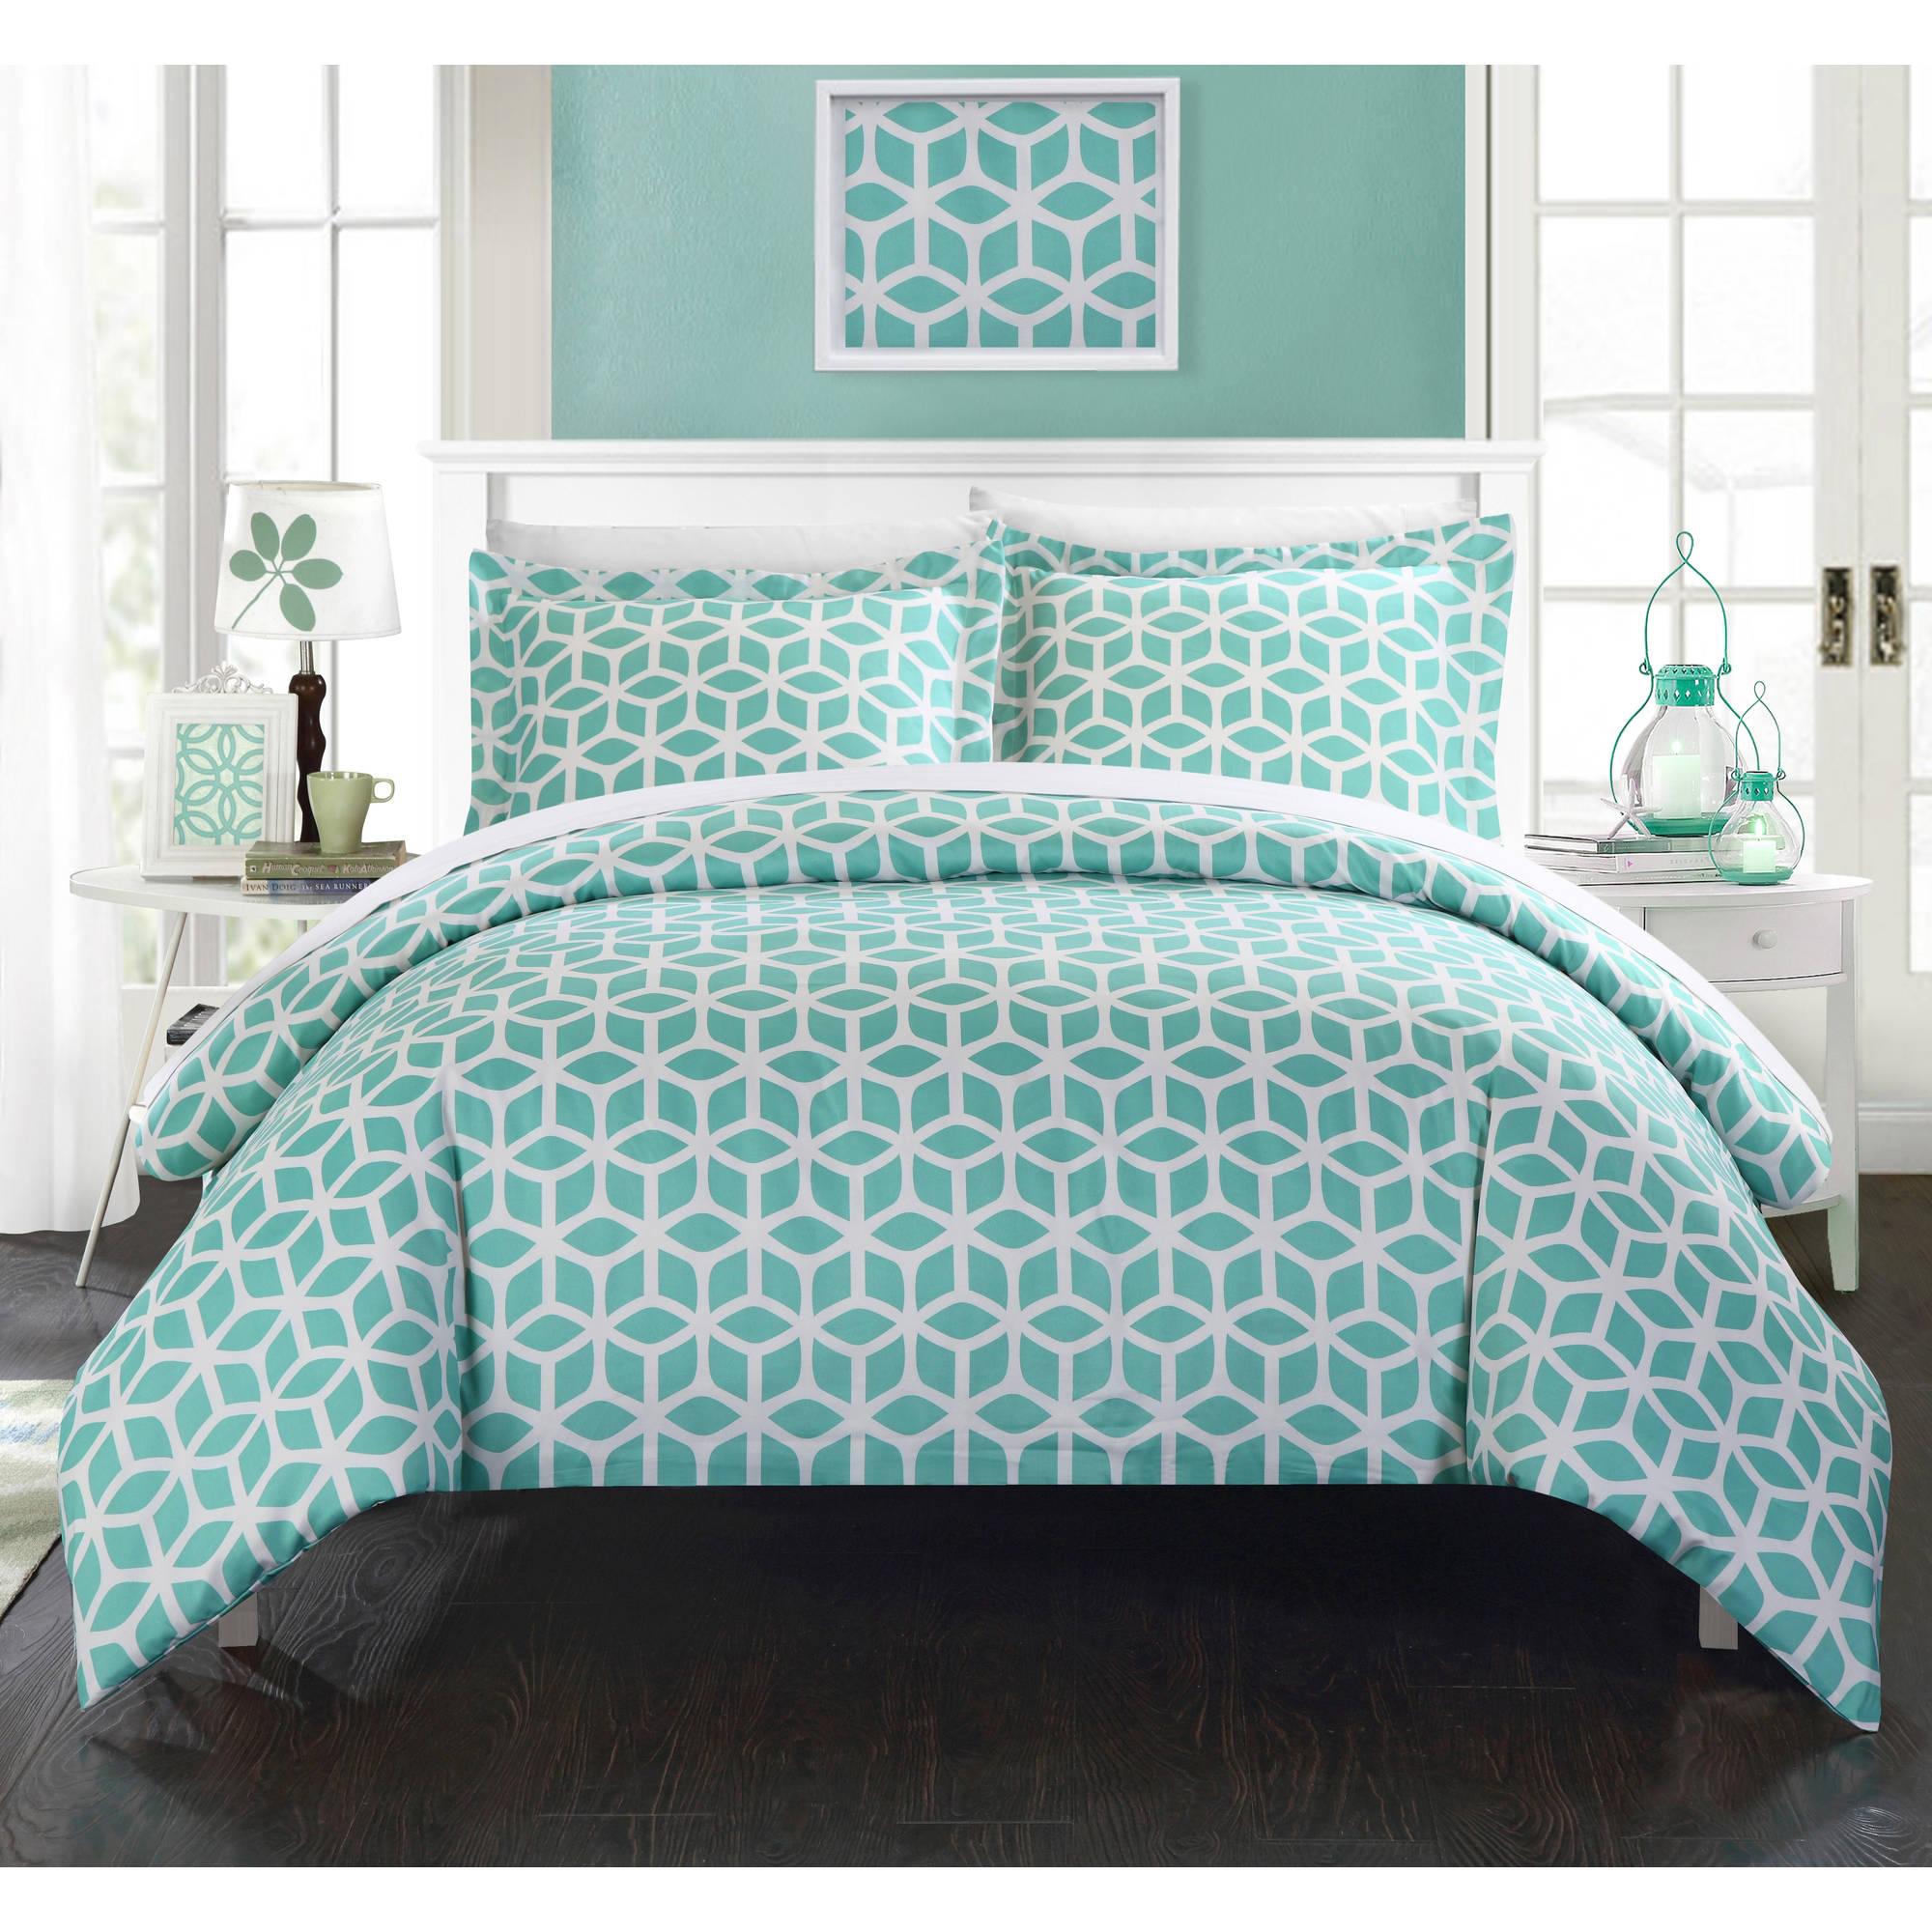 Chic Home Lovey 9-Piece Bed in a Bag Duvet Cover Set